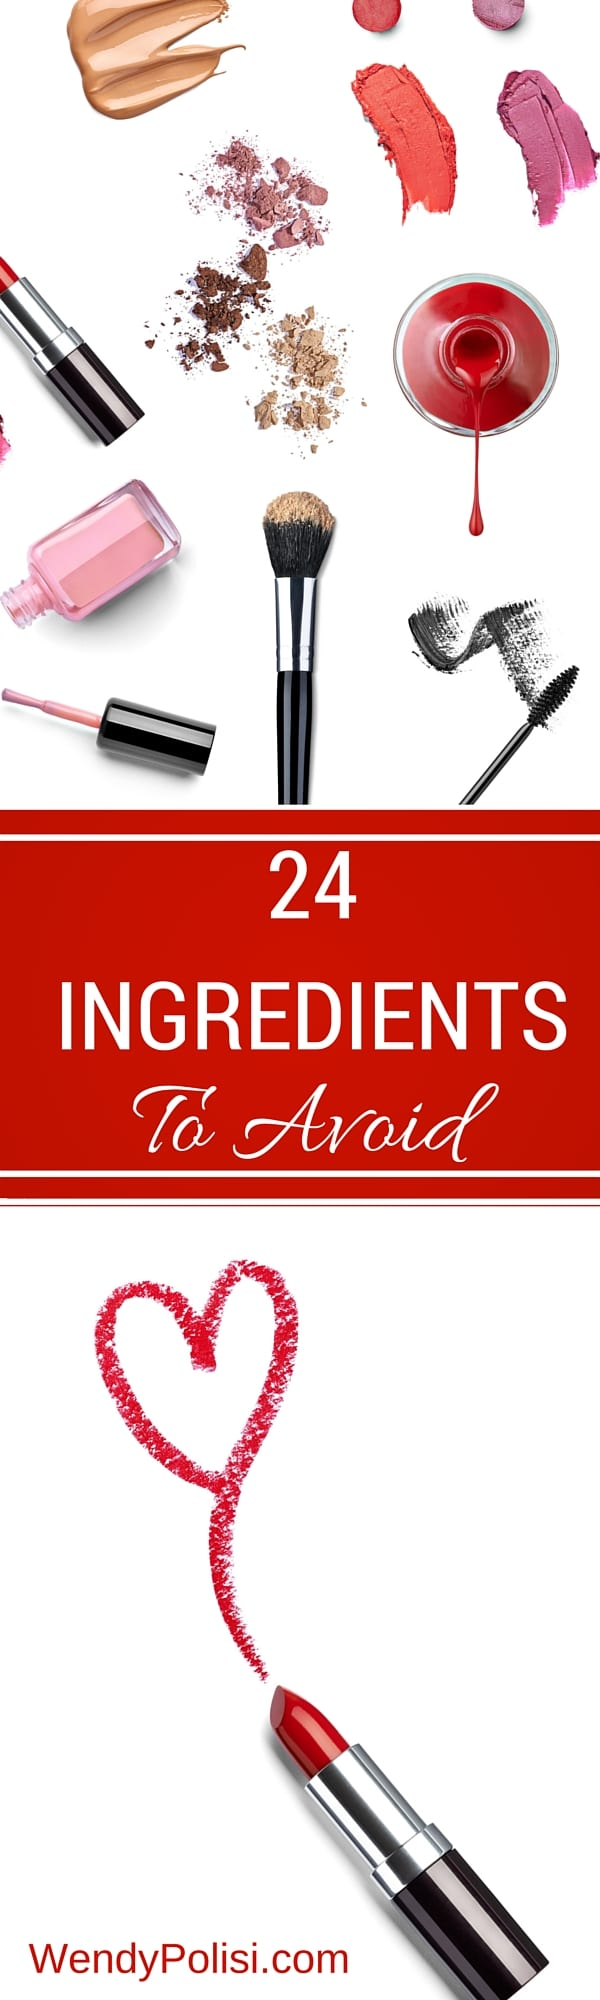 24 Skincare Ingredients to Avoid